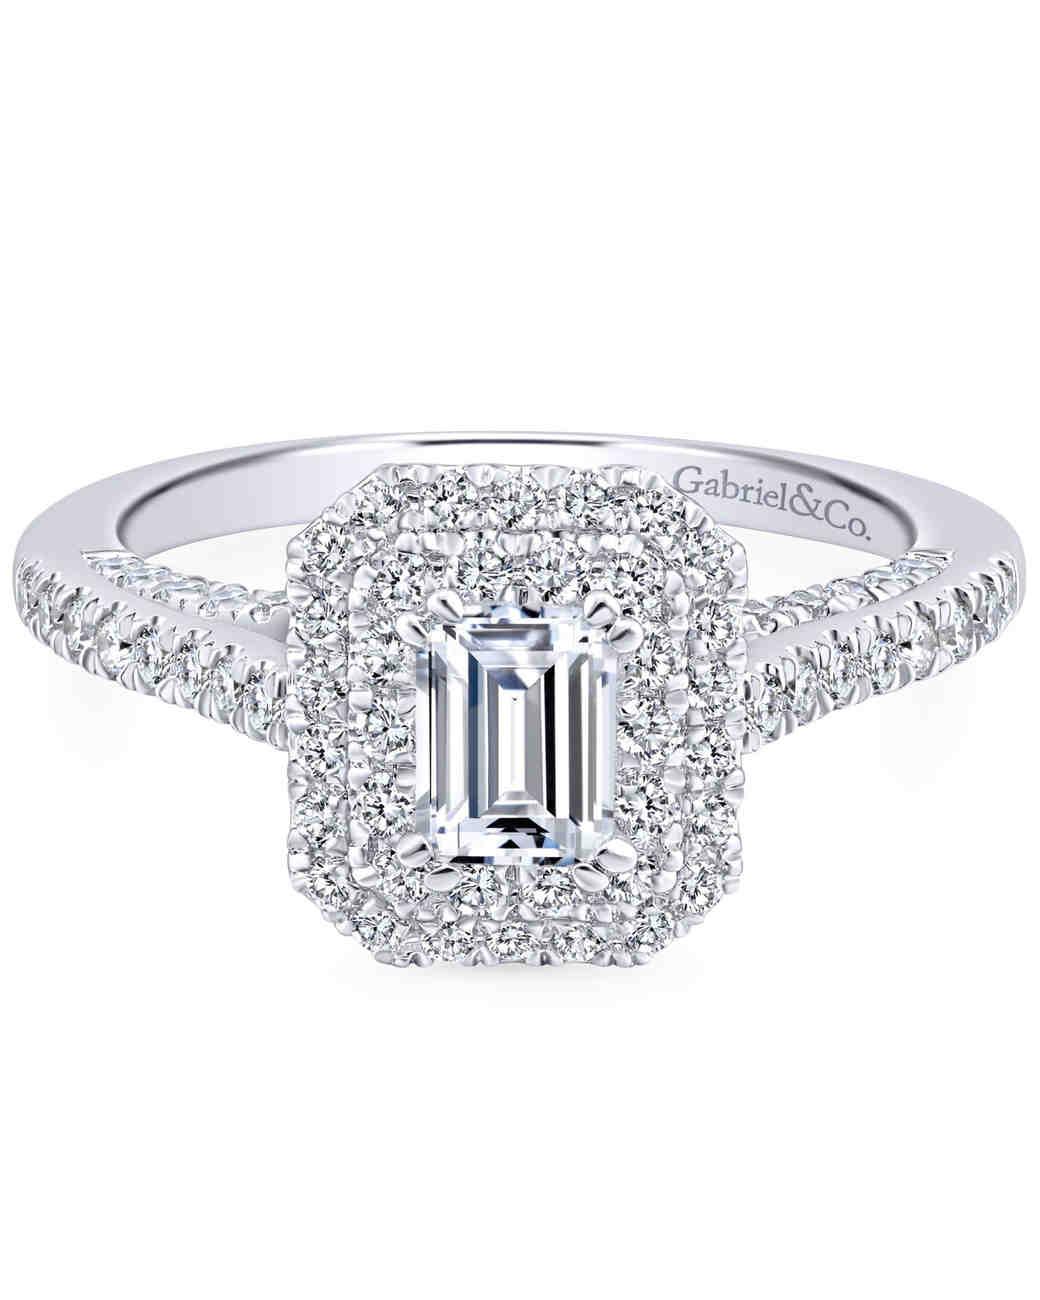 Gabriel & Co. Emerald-Cut Engagement Ring